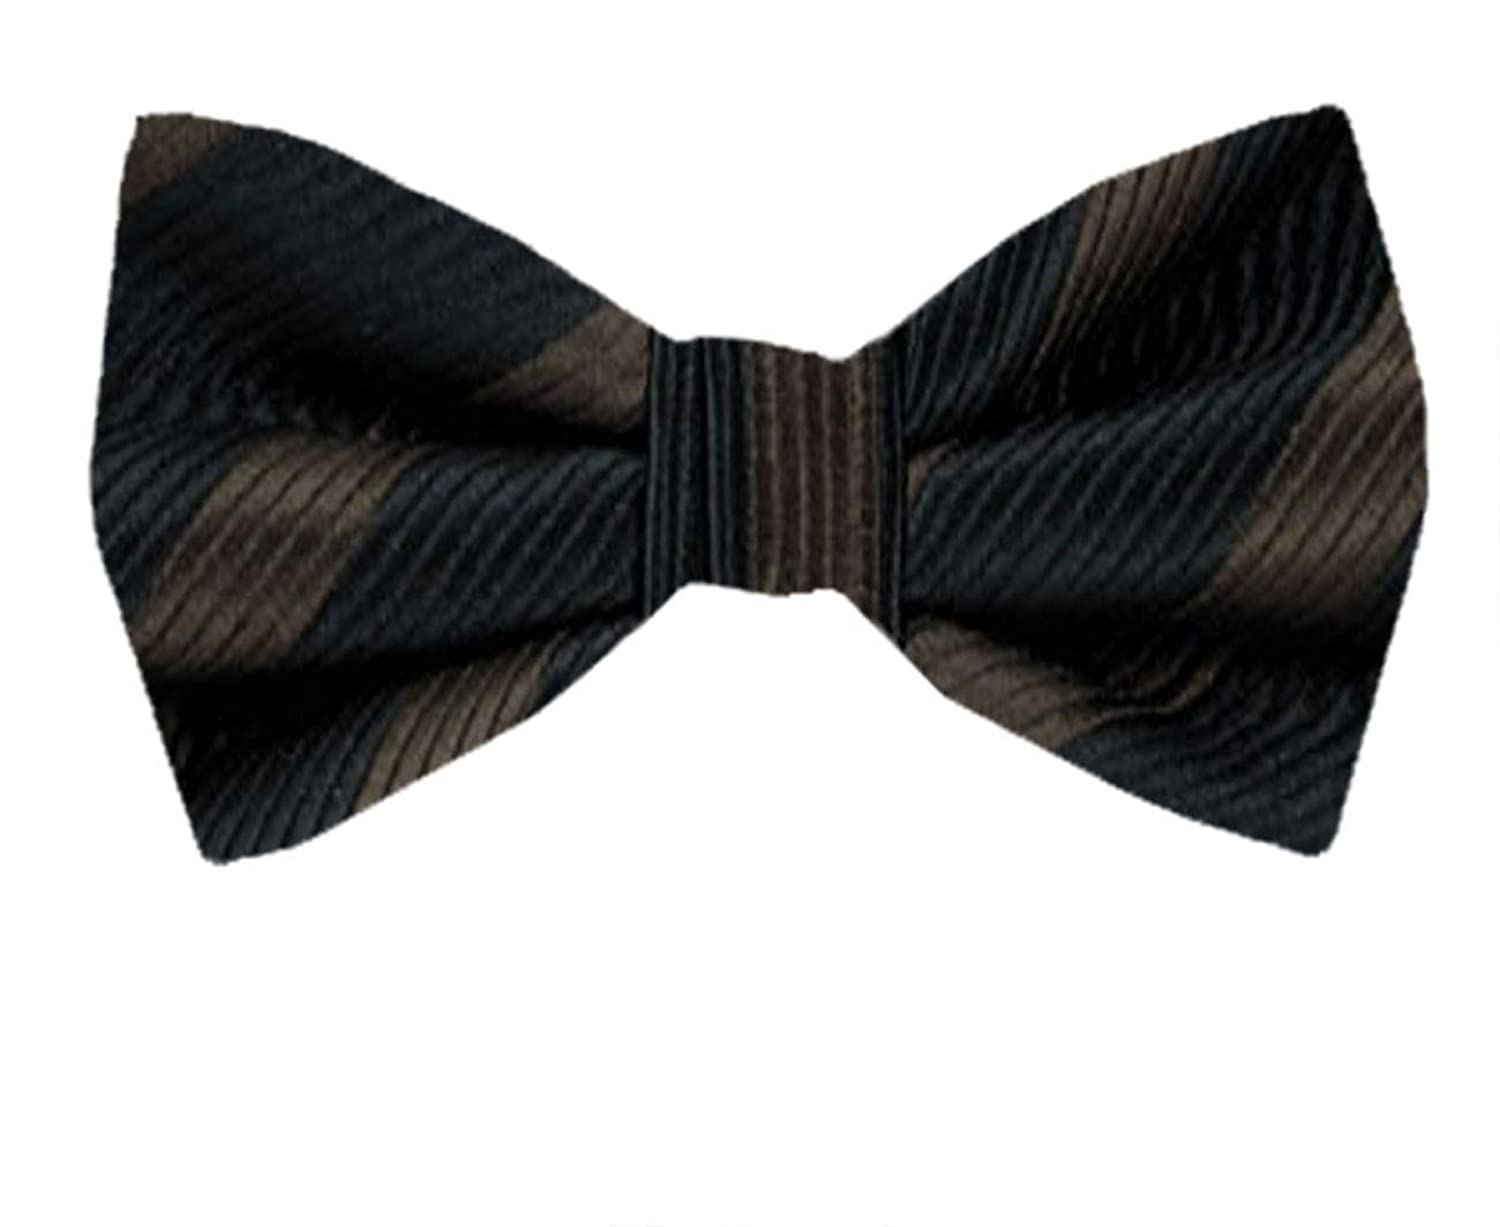 Buy Your Ties ACCESSORY ボーイズ US サイズ: One Size